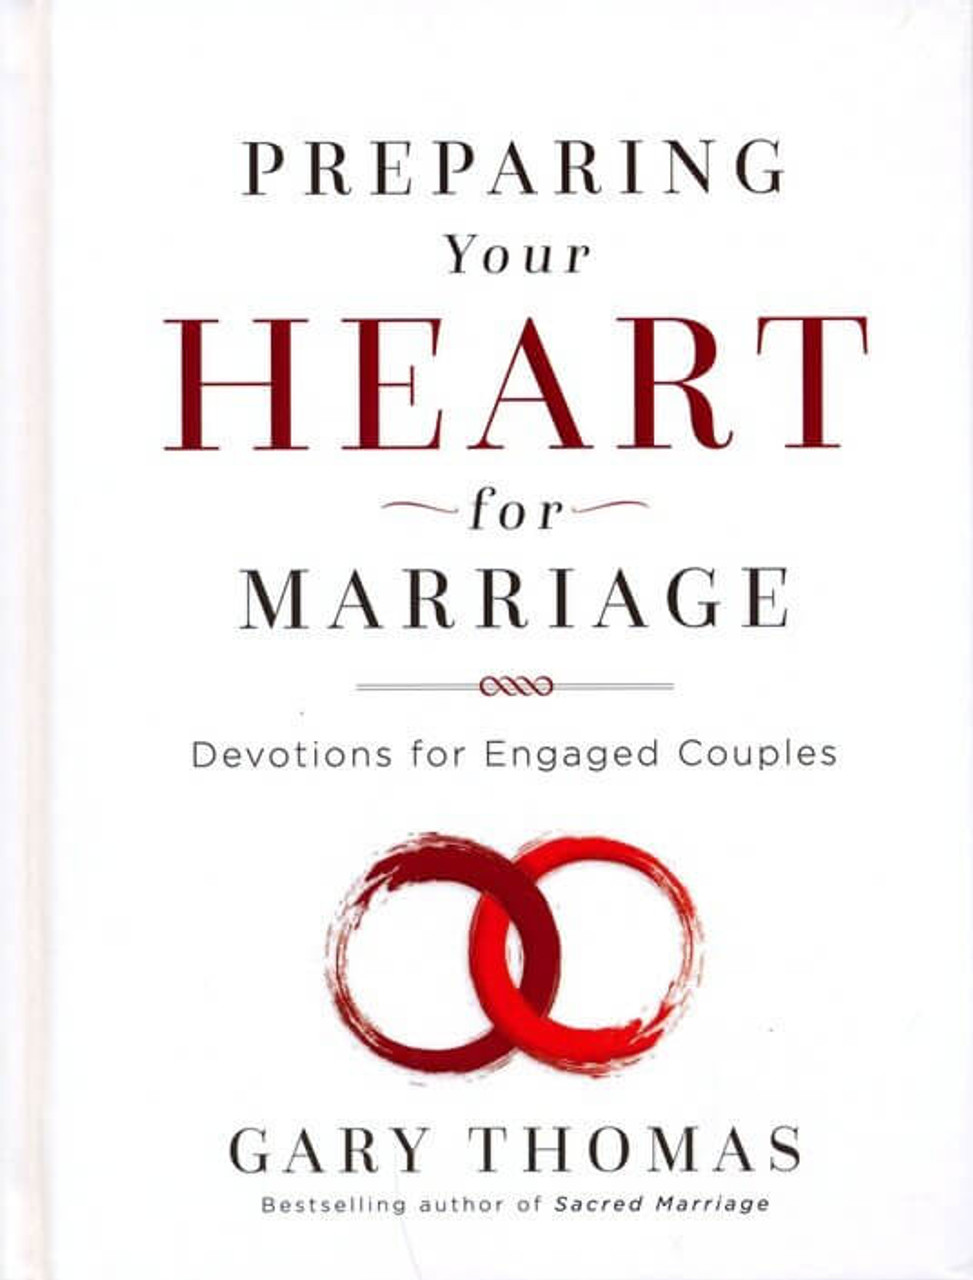 Devotions for engaged couples book